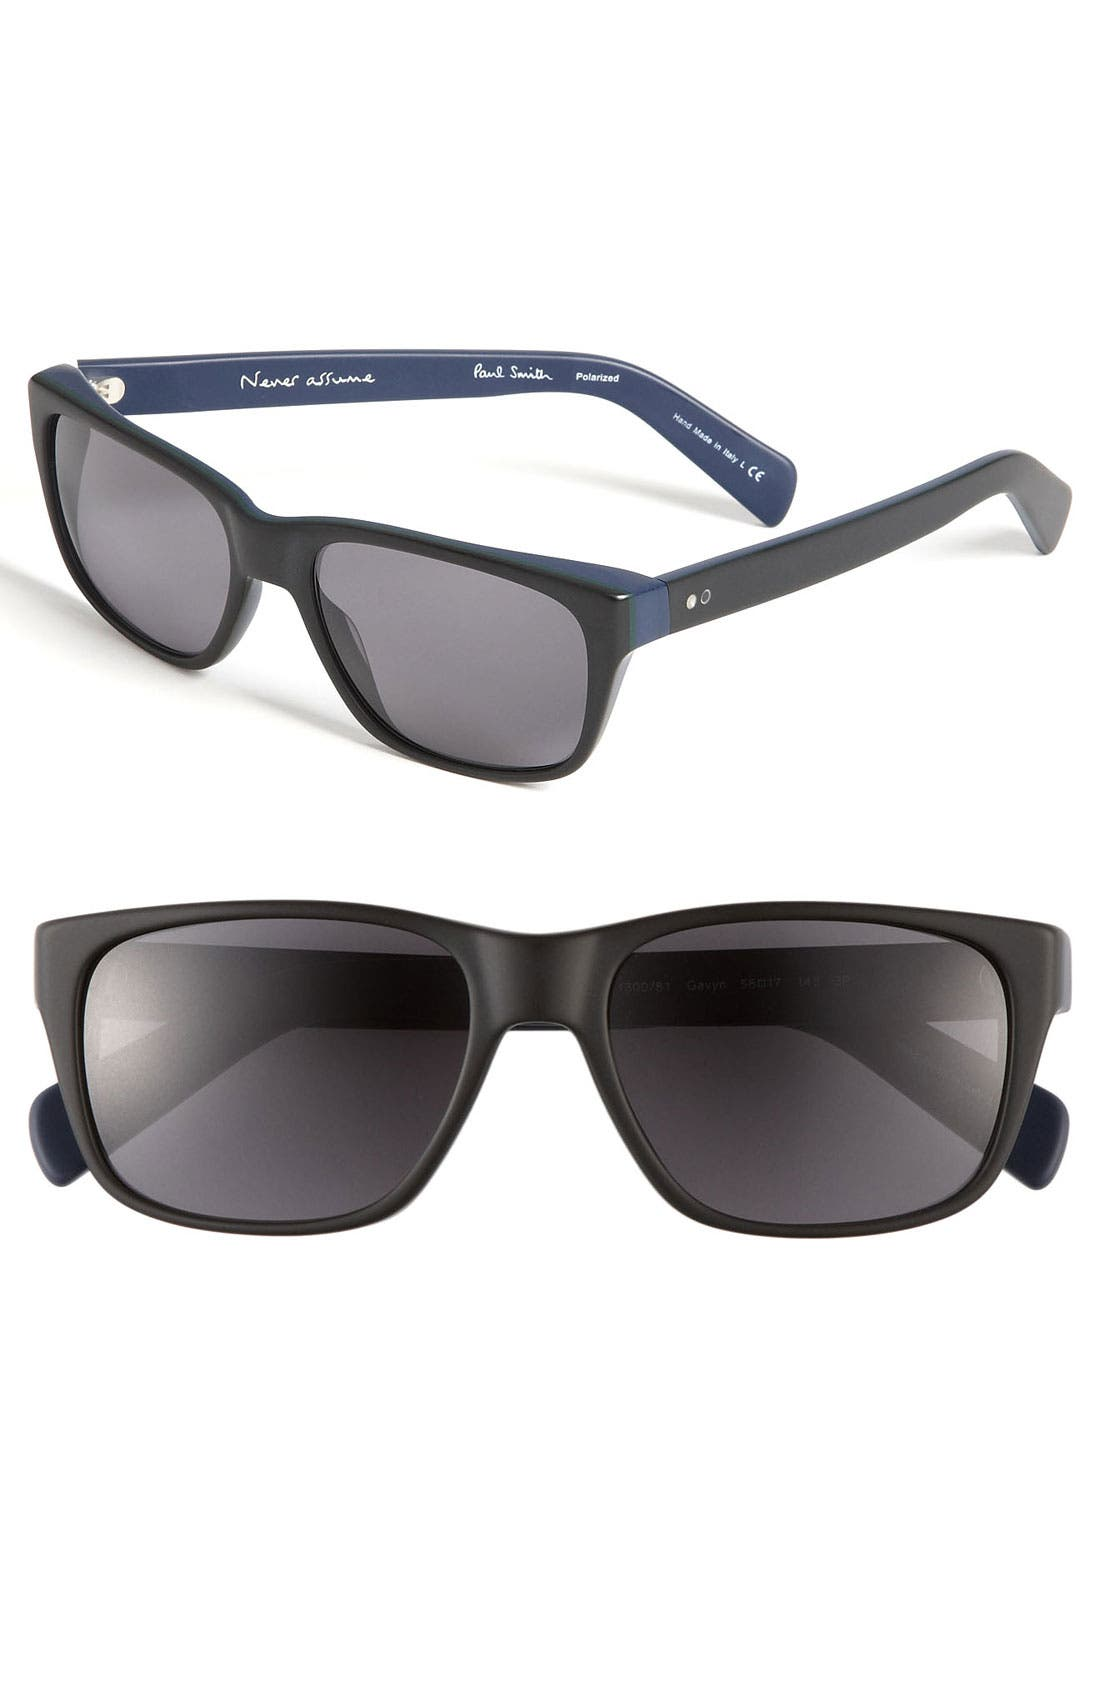 Alternate Image 1 Selected - Paul Smith 'Gavyn' Polarized Sunglasses